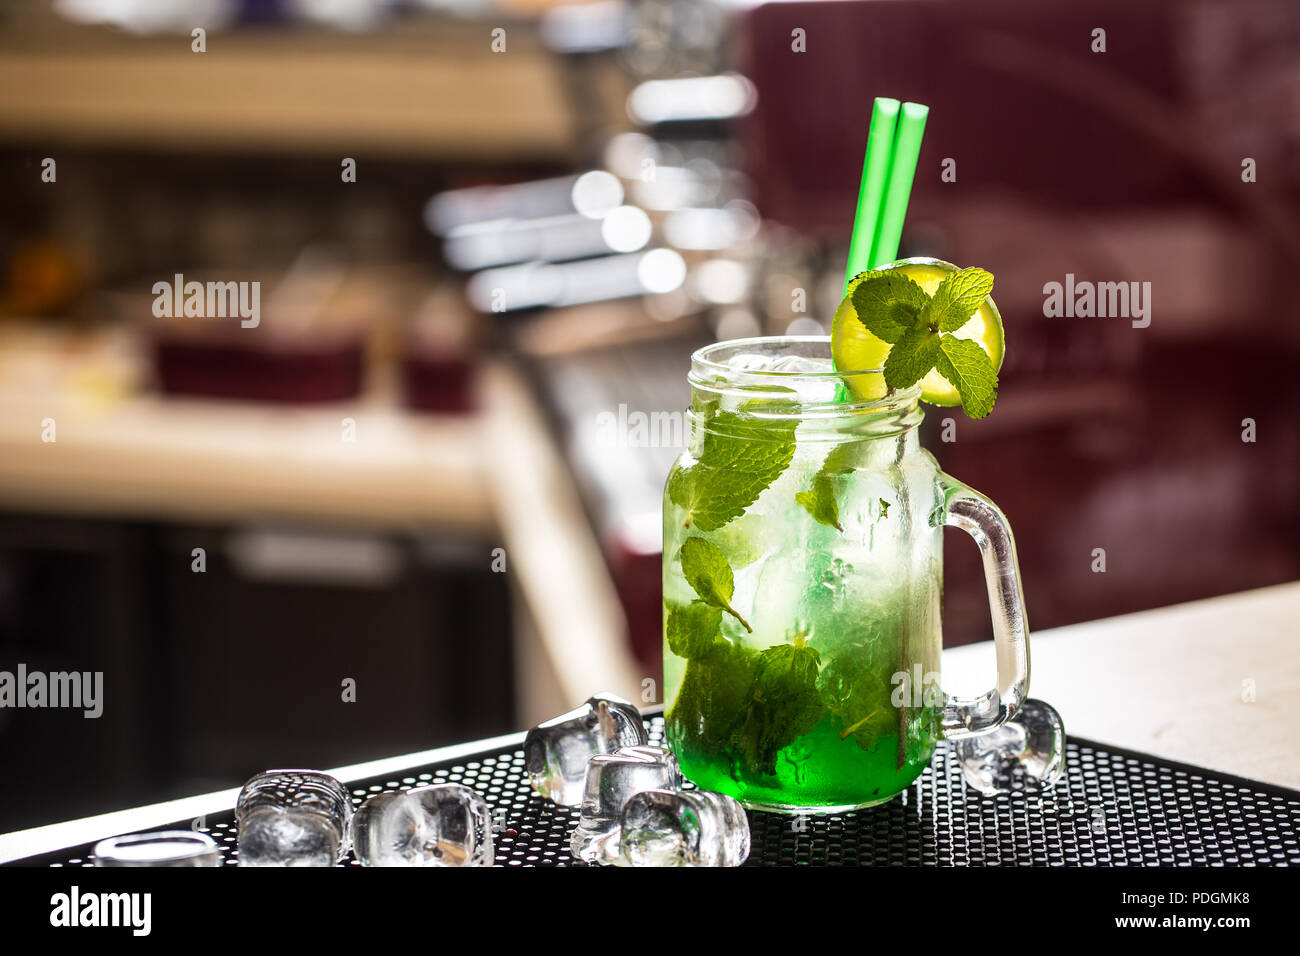 Mojito drink or lemonade with mint leaves on barcounter. - Stock Image